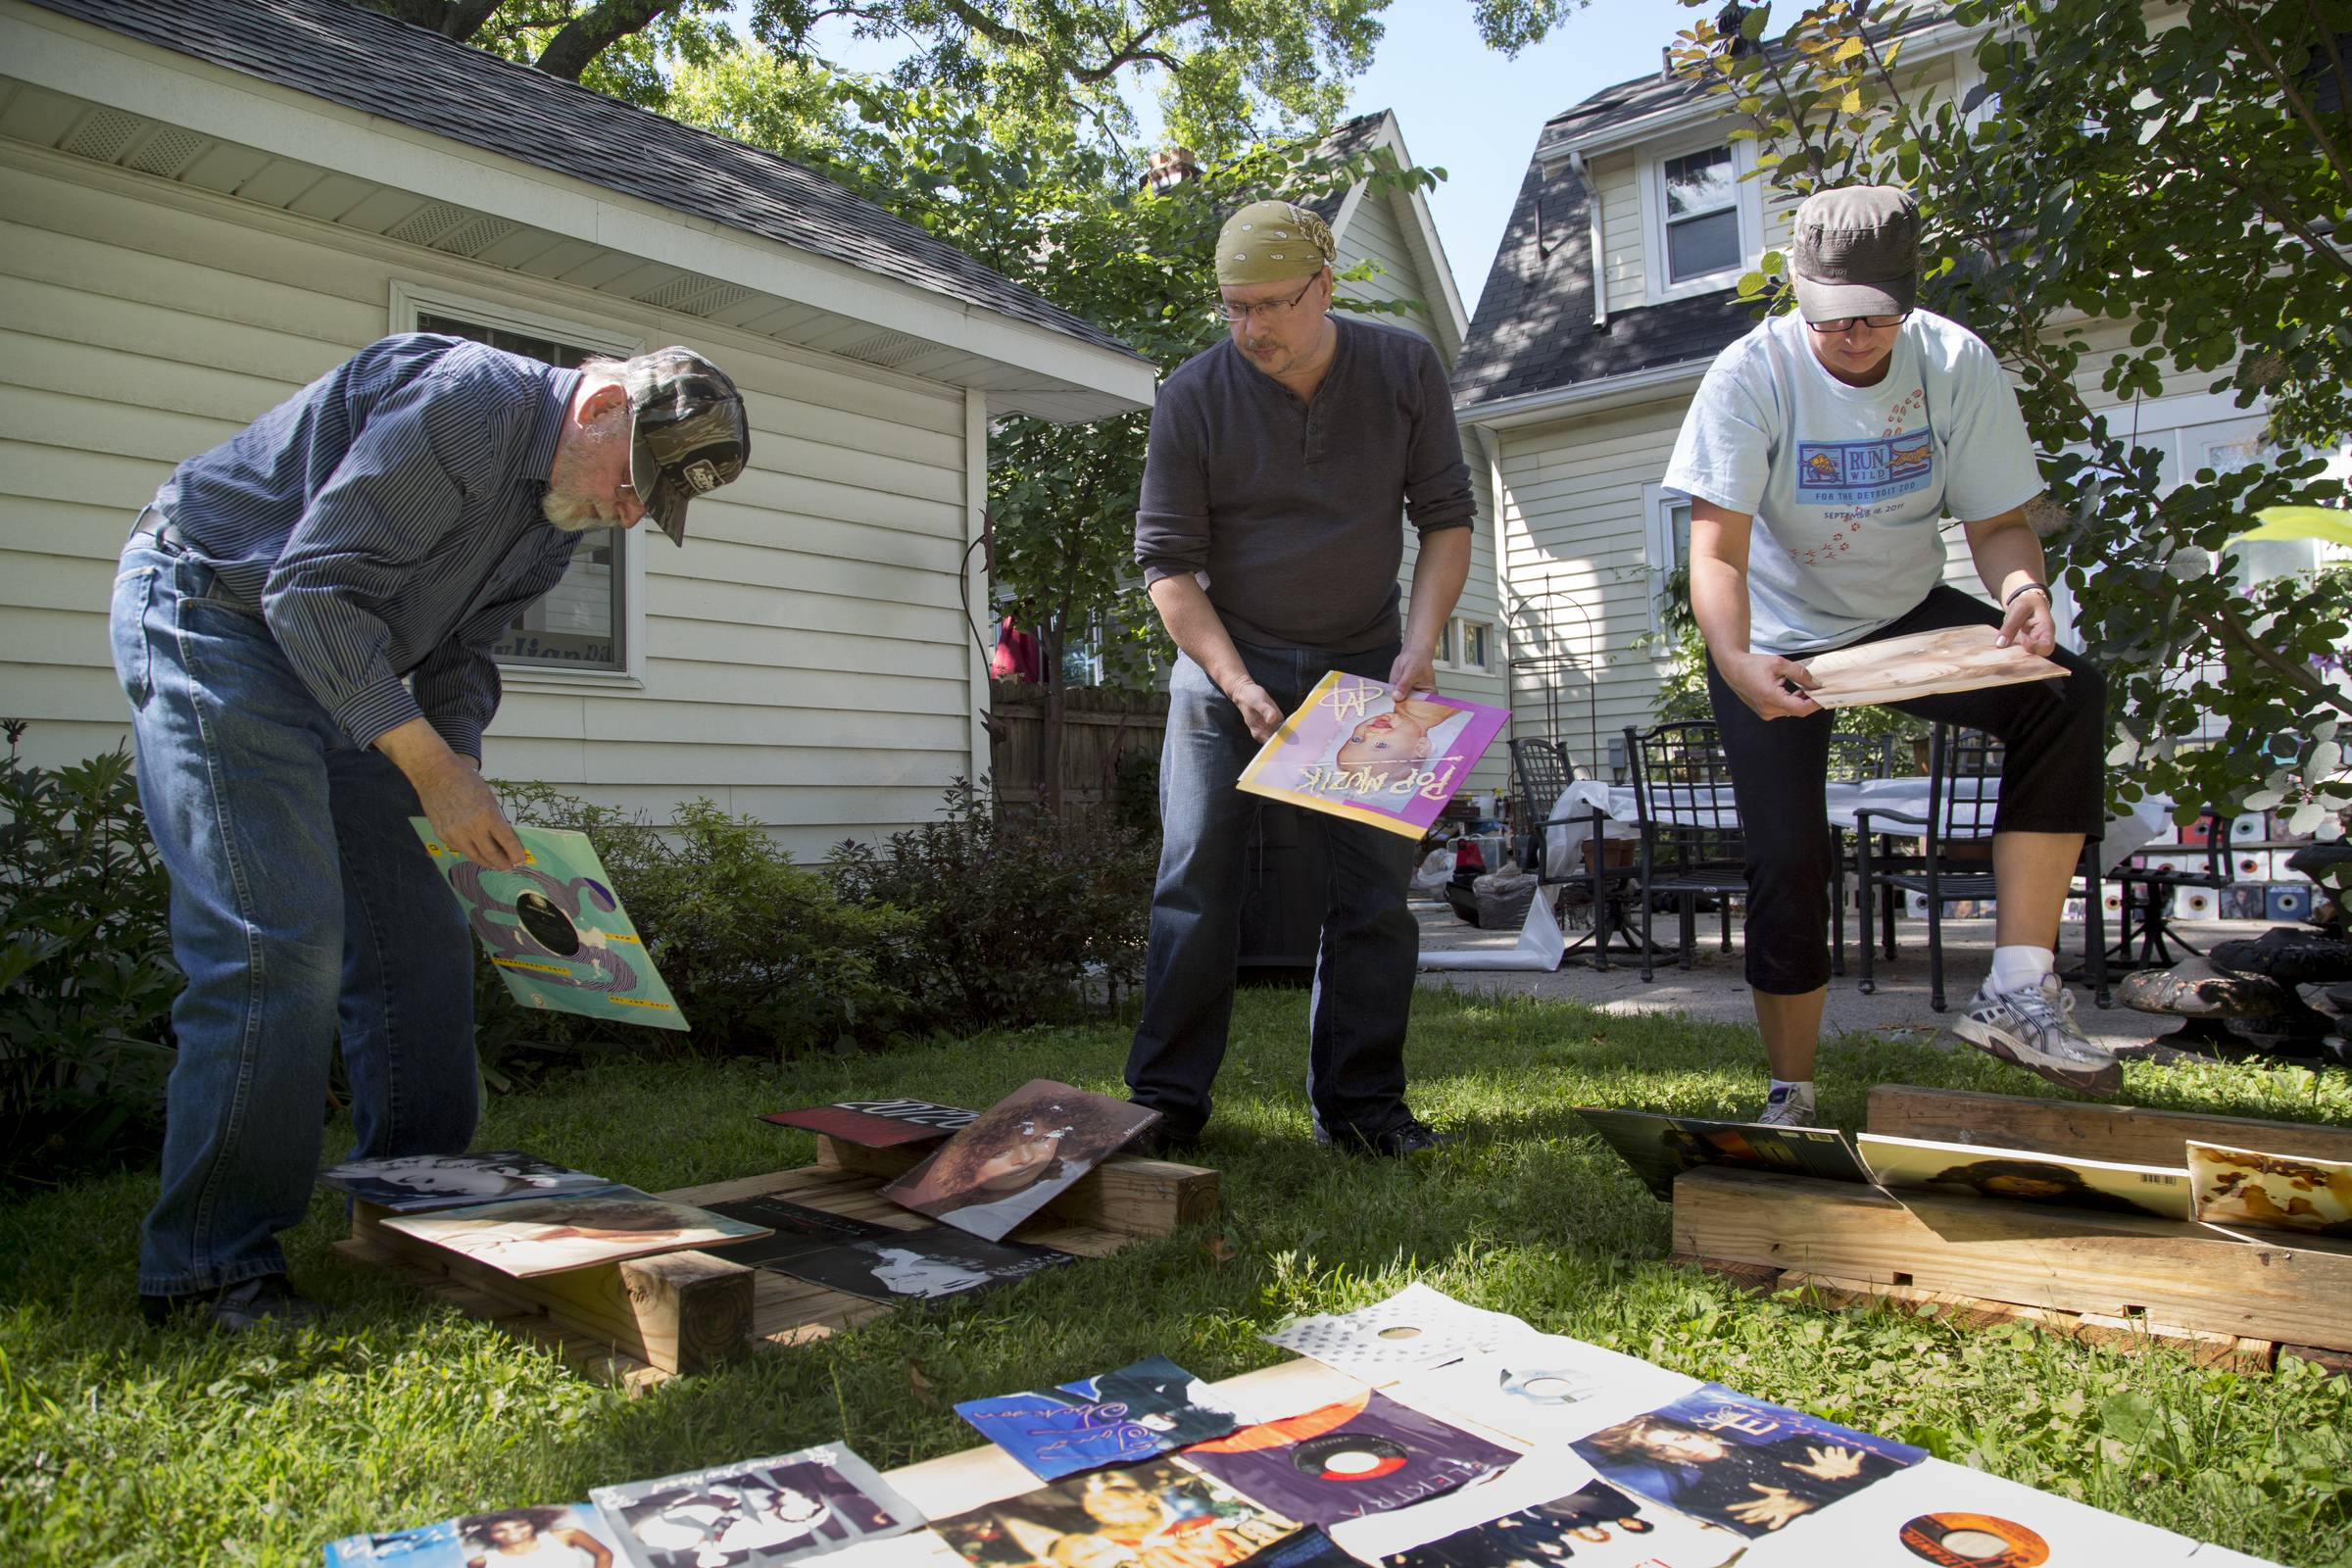 From left, Joe Pawlica, 80, of Warren, helps his son City councilman Greg Pawlica, 46, of Ferndale, go through his soaked album collection with neighbor Wanda Korgol, 41 of Ferndale, after water rose over a foot in his basement.